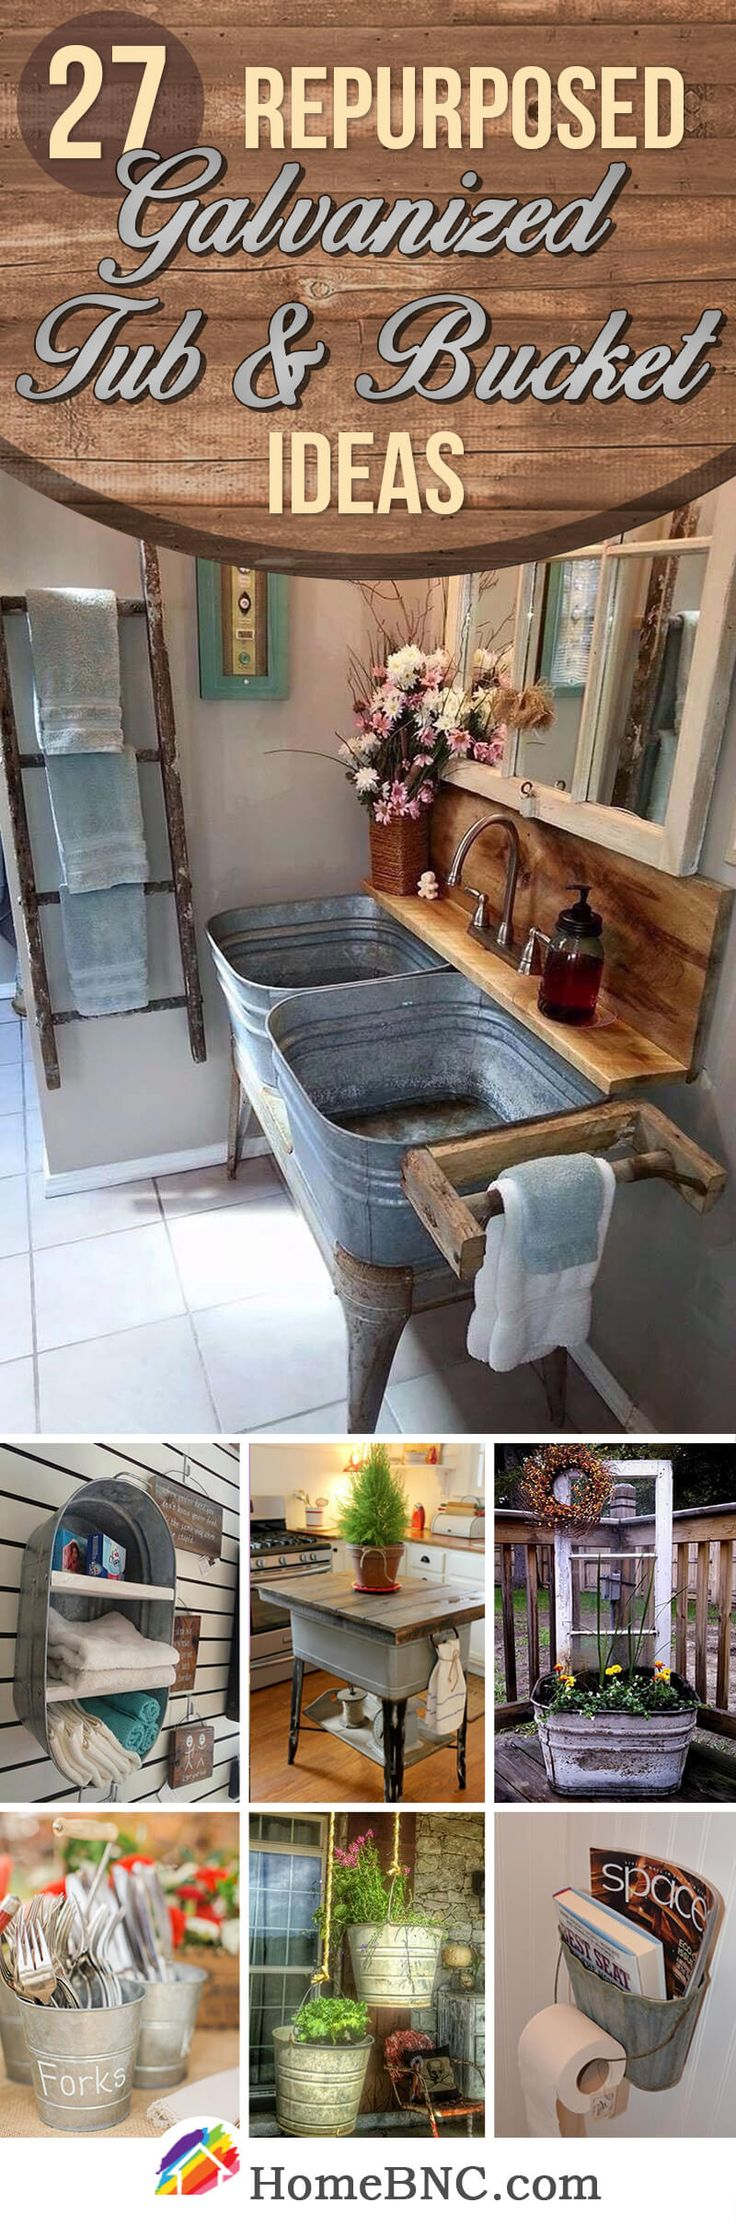 Reused and Repurposed Galvanized Tub and Bucket Decor Ideas